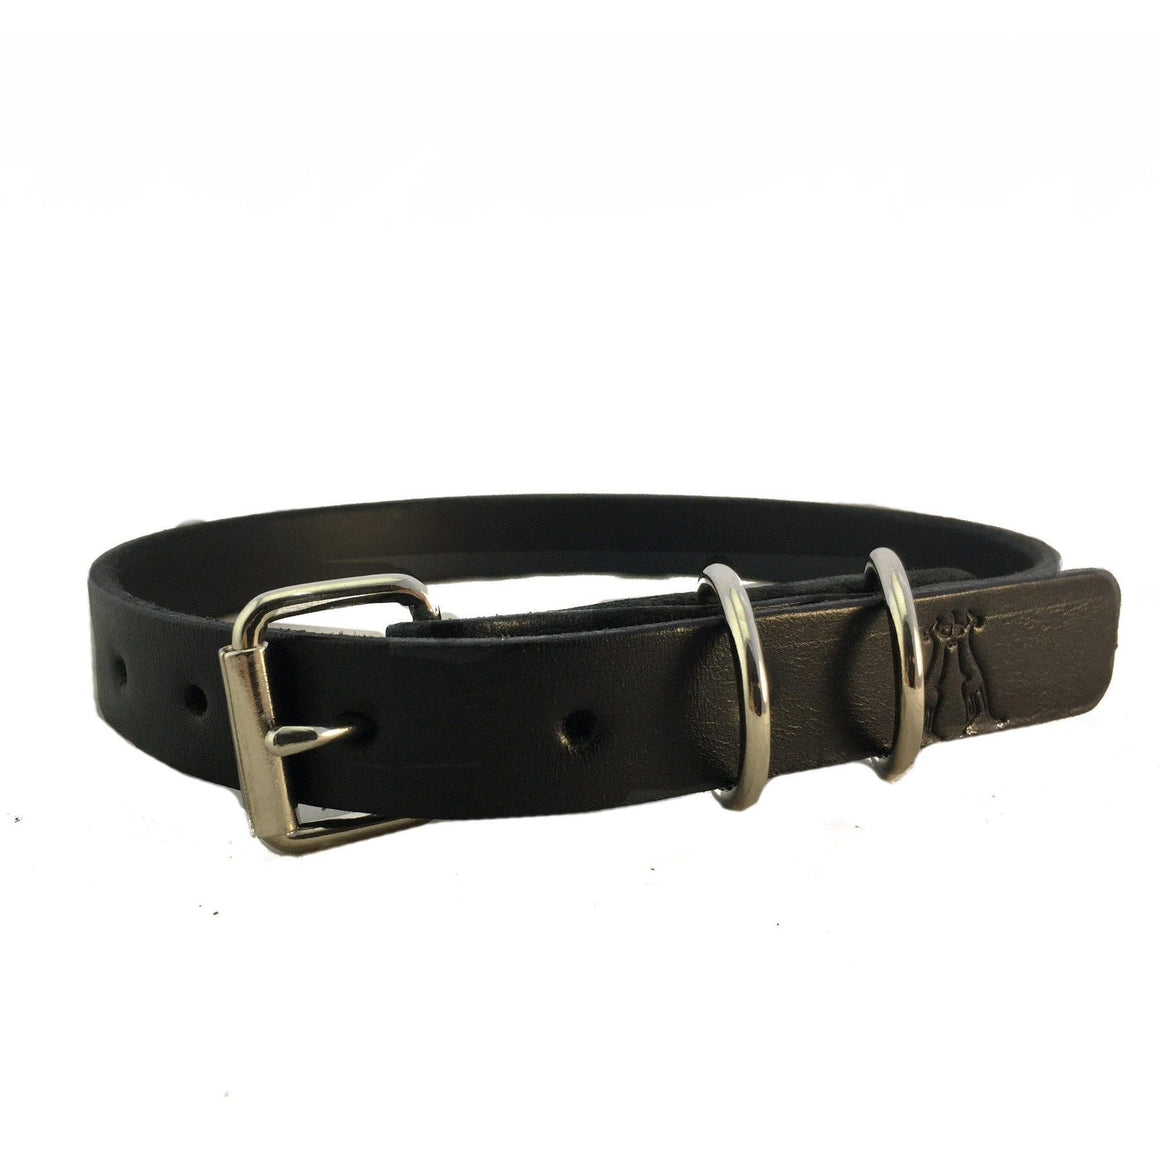 Dog Collar in Black 20mm